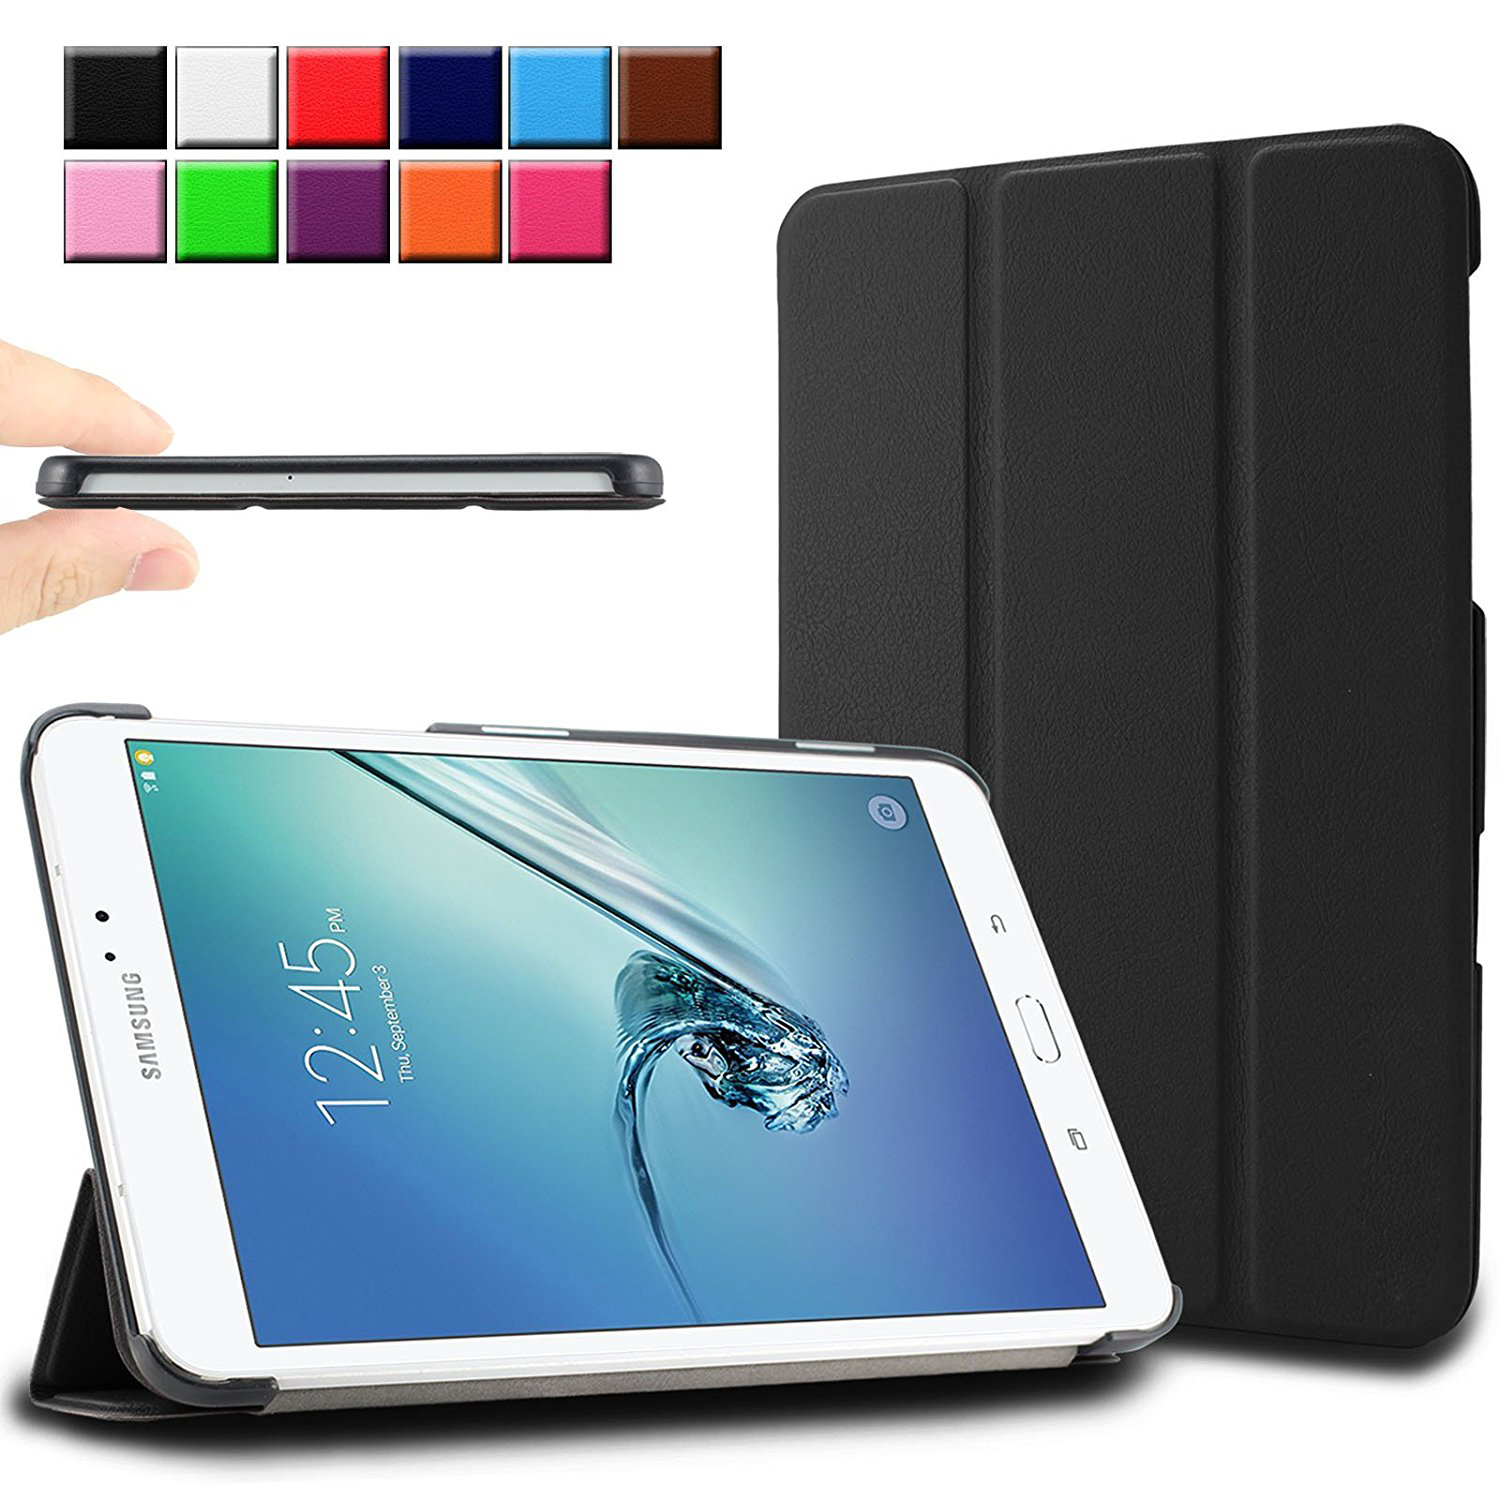 For Samsung Galaxy Tab S2 9.7 Case, Ultra Slim Stand Smart Cover for Galaxy Tab S2 9.7 SM-T810 T815 Protective Skin Shell Case new ultra slim waterproof soft silicone rubber tpu protective shell case cover for samsung galaxy tab s2 8 0 sm t710 t715 tablet